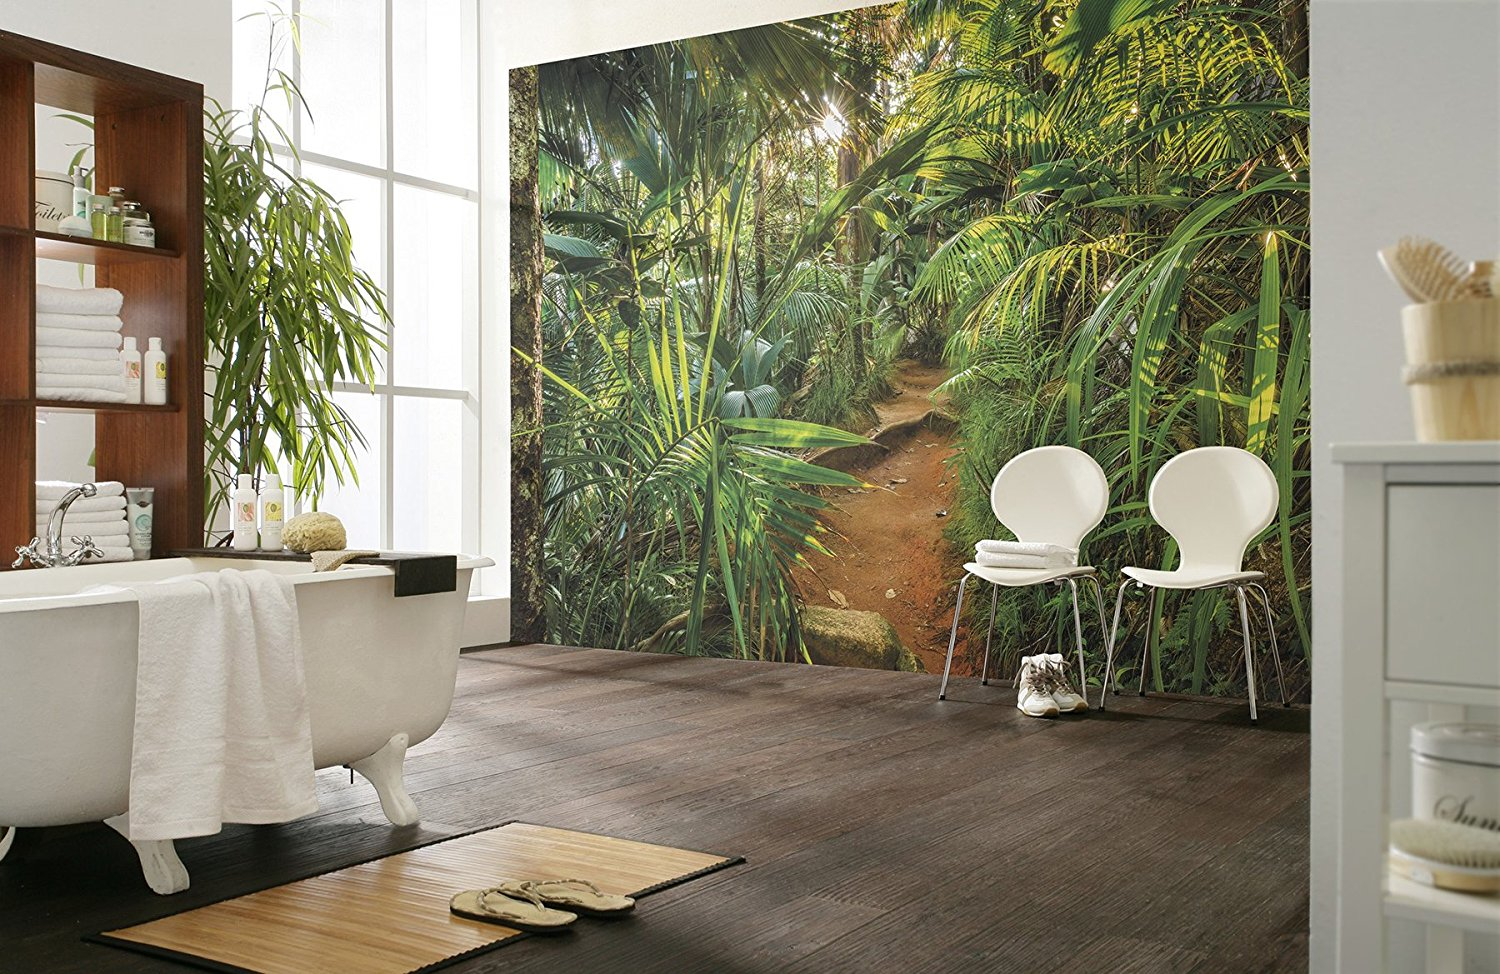 Jungle Trail Wall Mural 8-989 by Komar